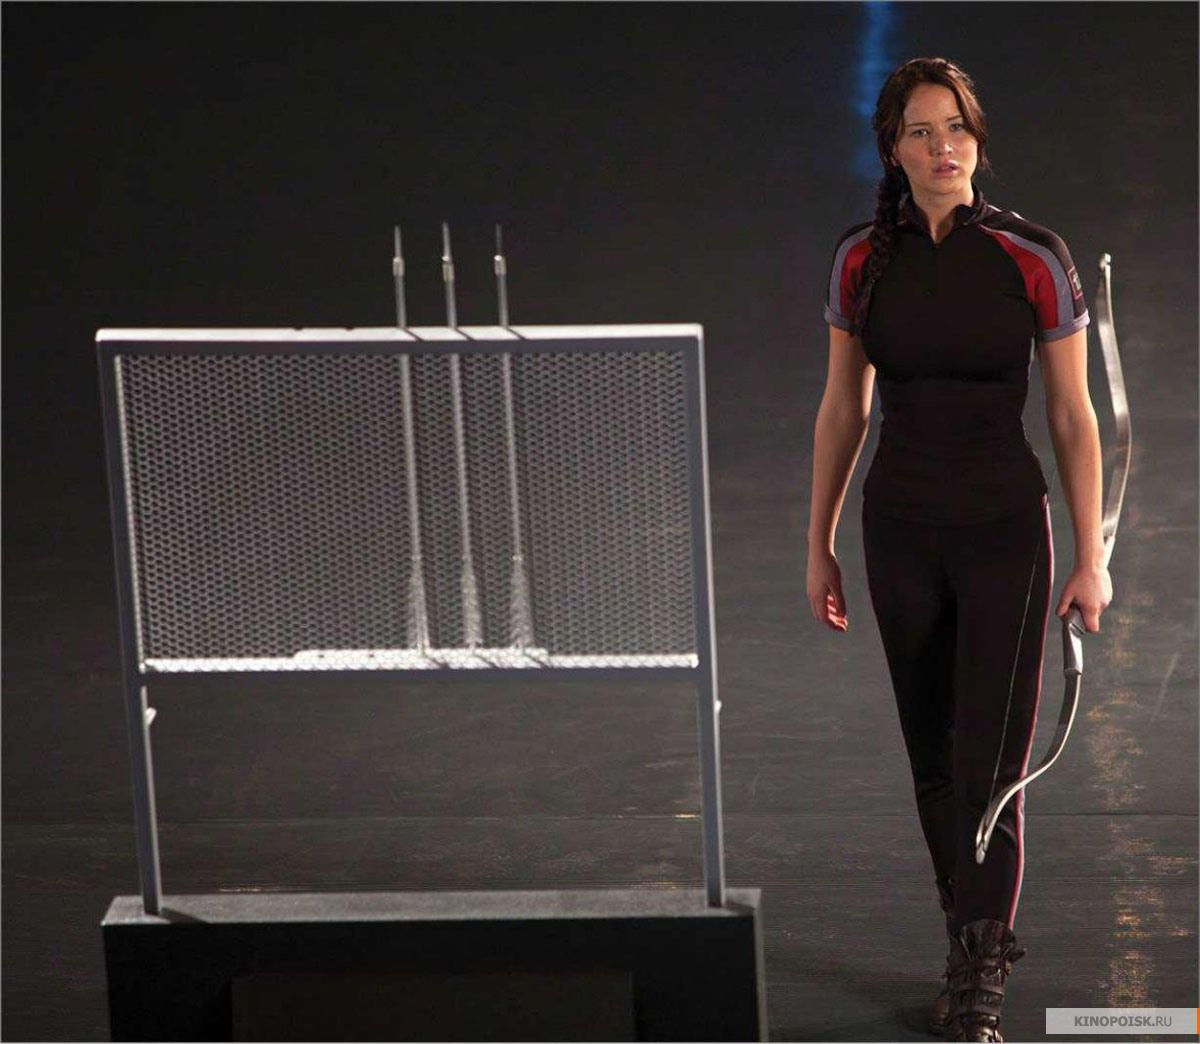 THE HUNGER GAMES Movie Images Featuring Jennifer Lawrence ...